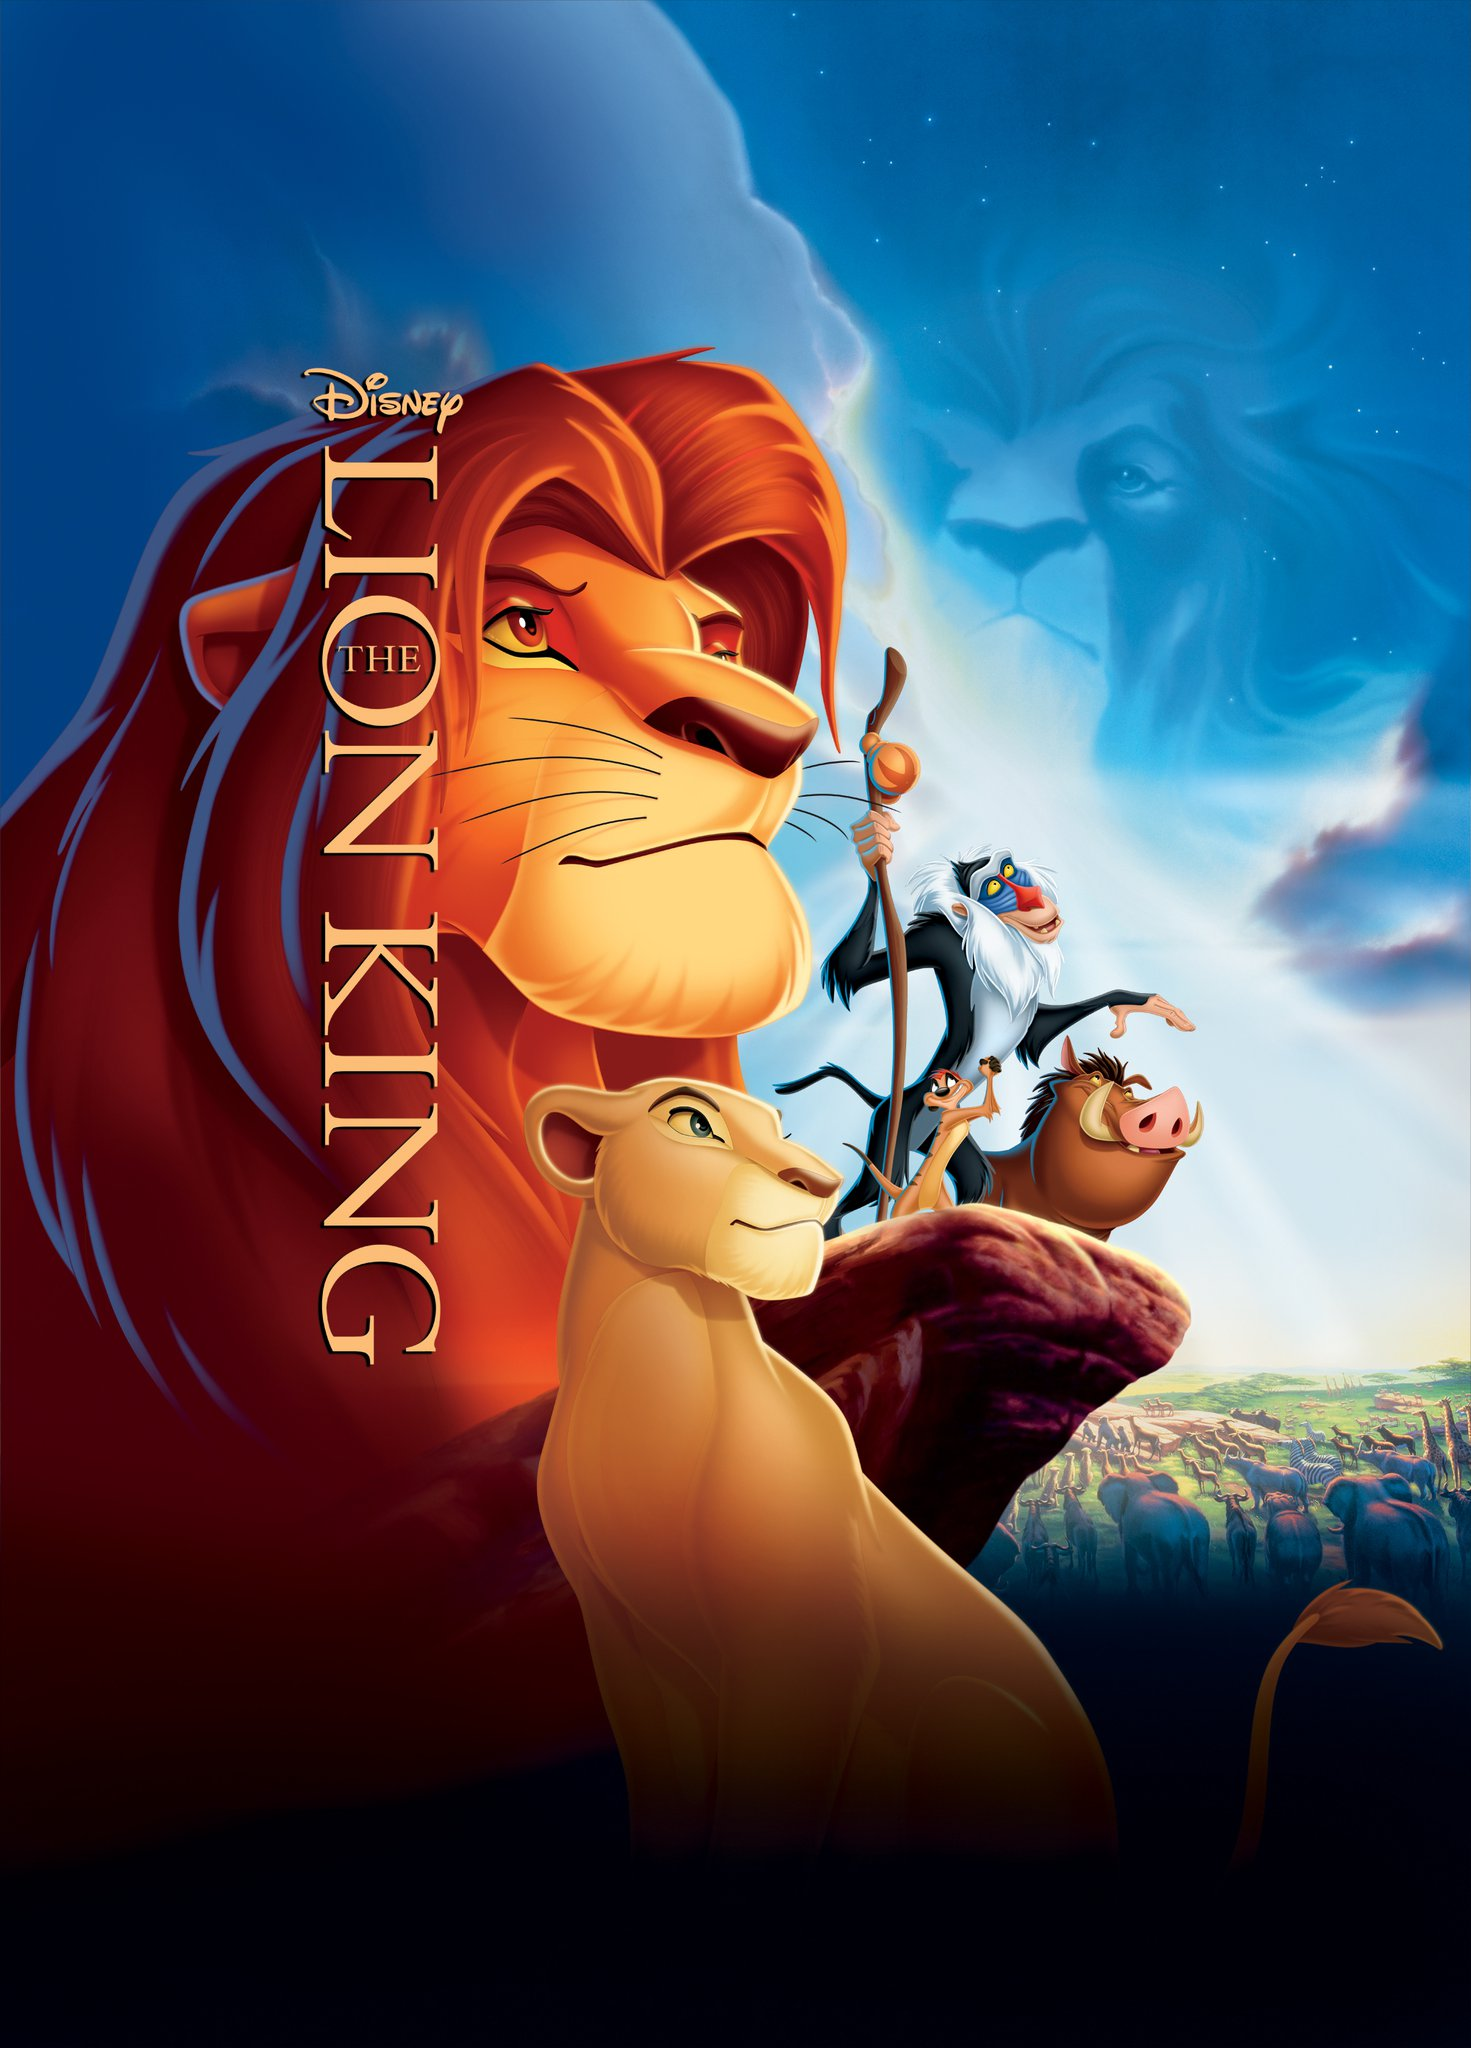 The-Lion-King-Poster | Rotoscopers